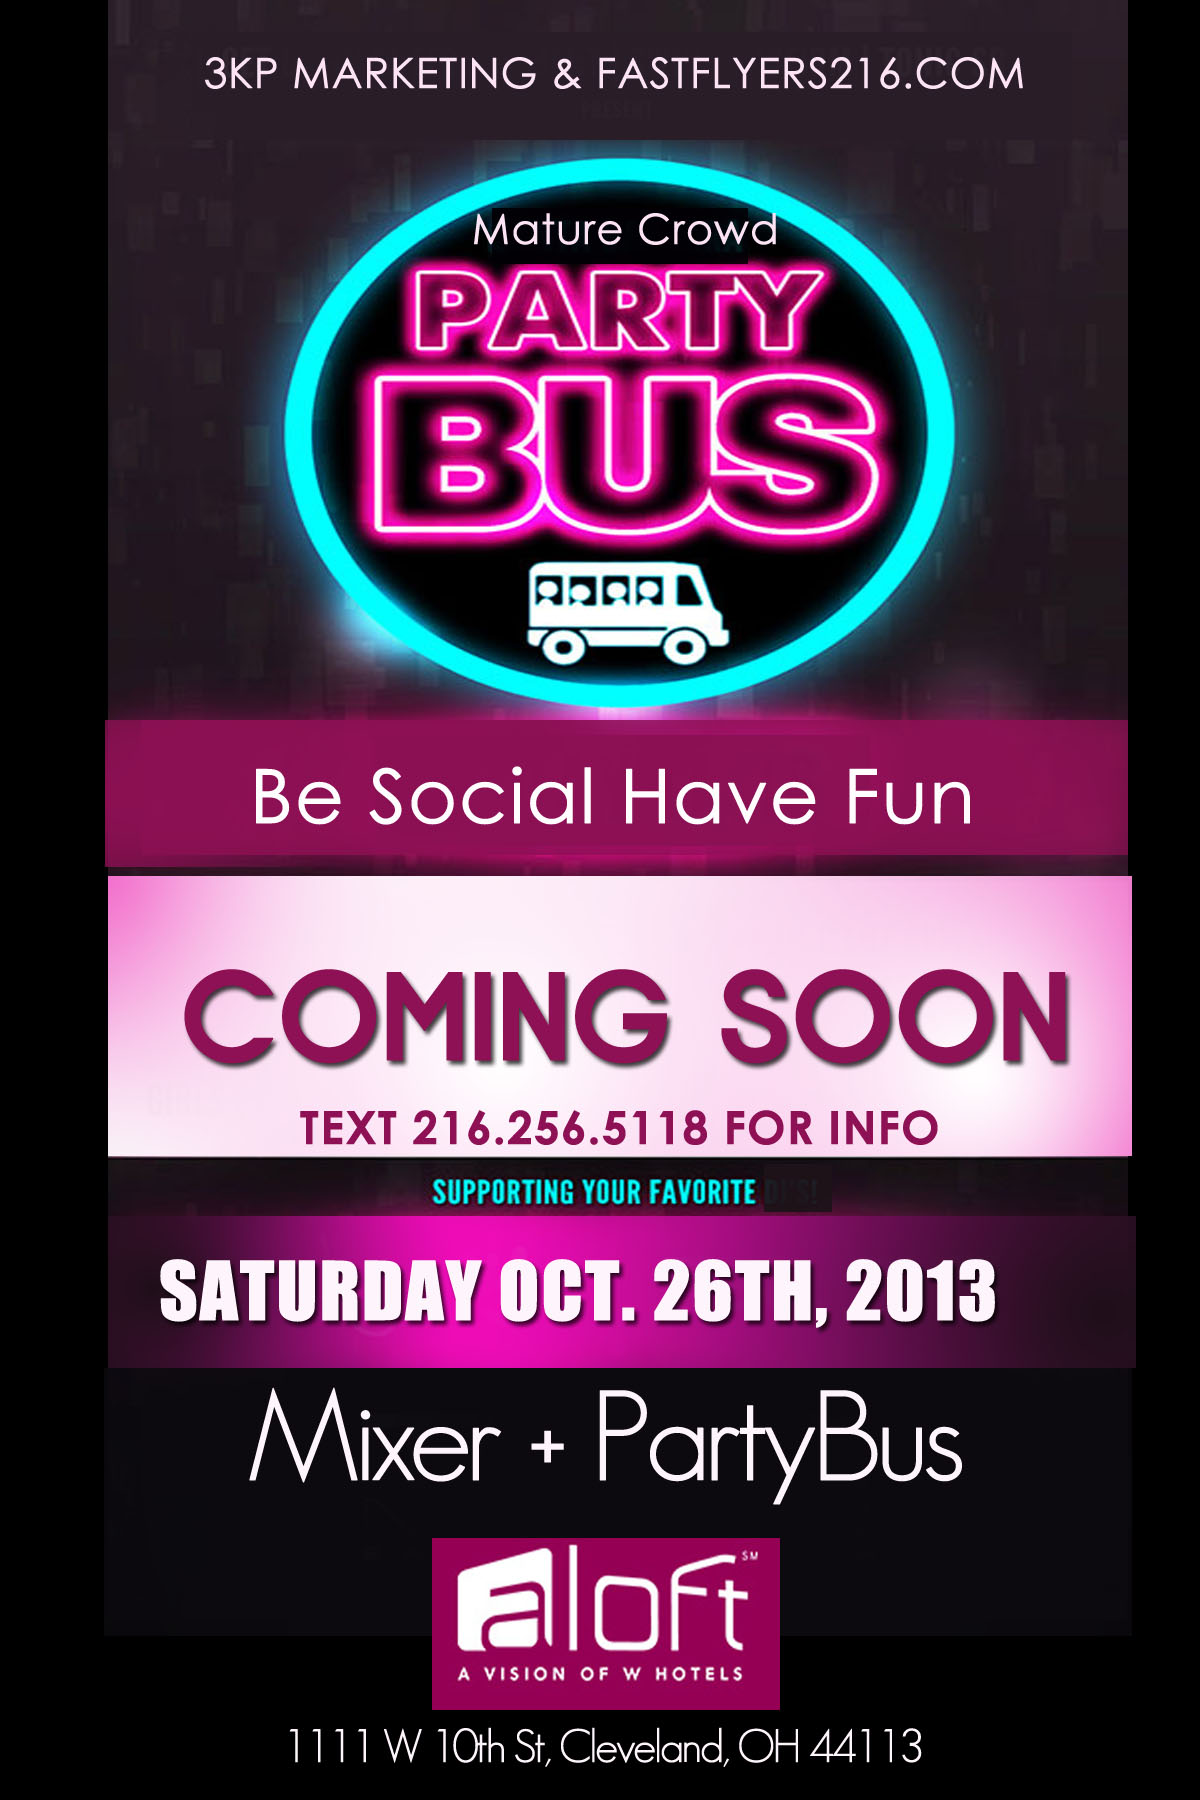 Mixer + Party Bus - Part of Rock the Vote Week Events Tickets, Sat, Oct 26, 2013 at 8:00 PM ...